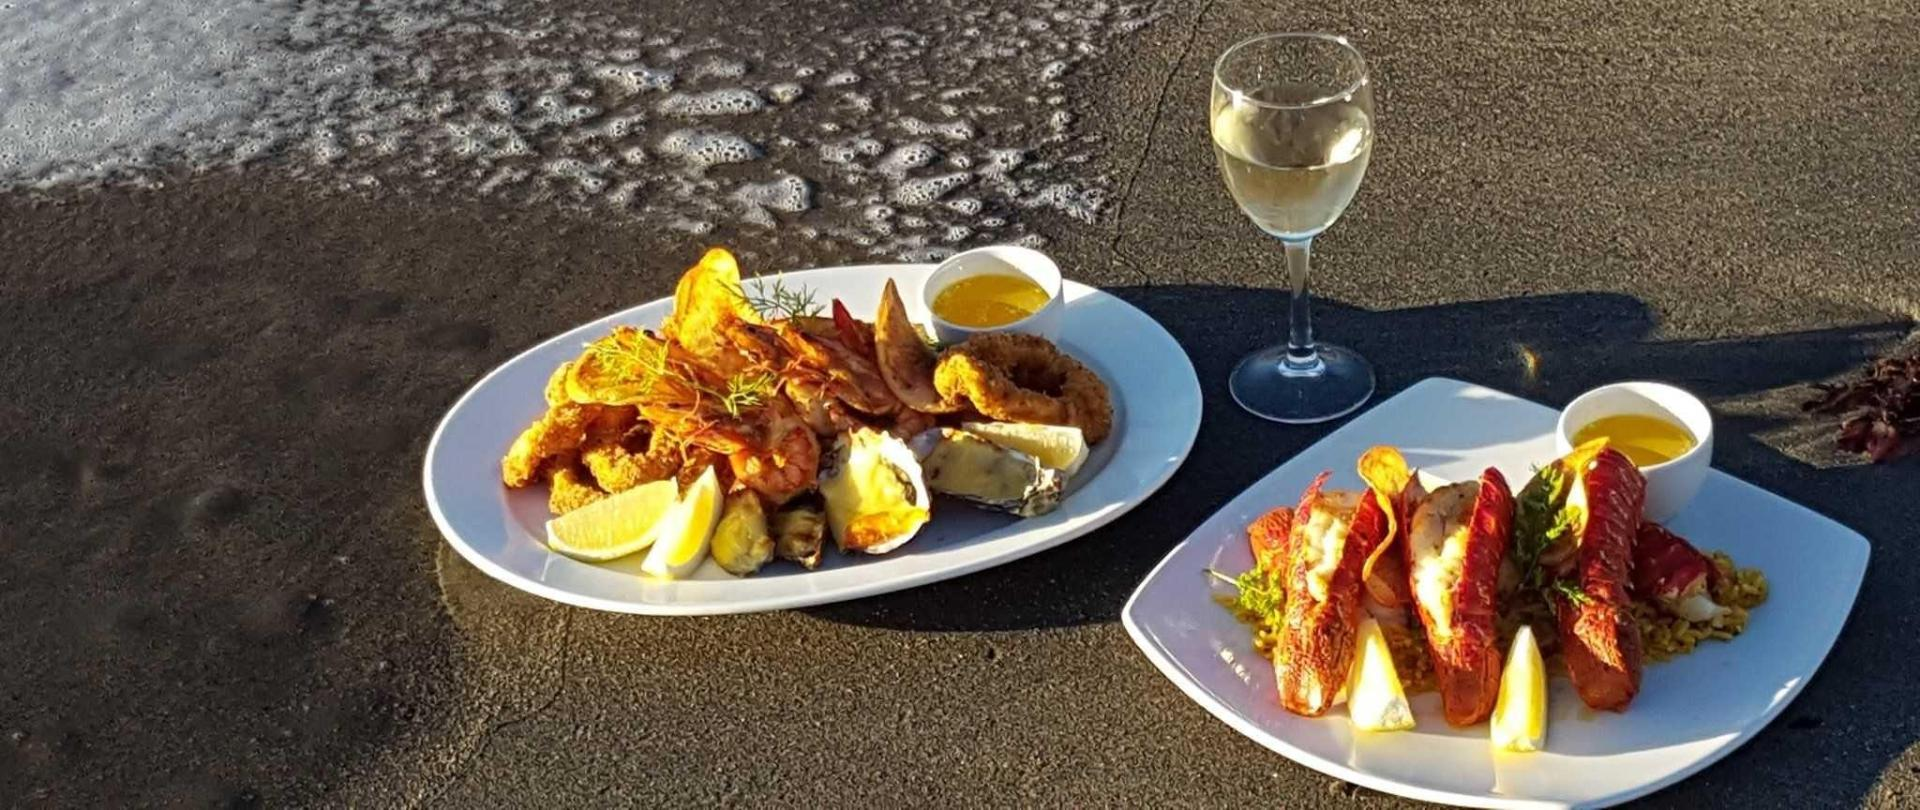 lobster-platter-beach-1.jpg